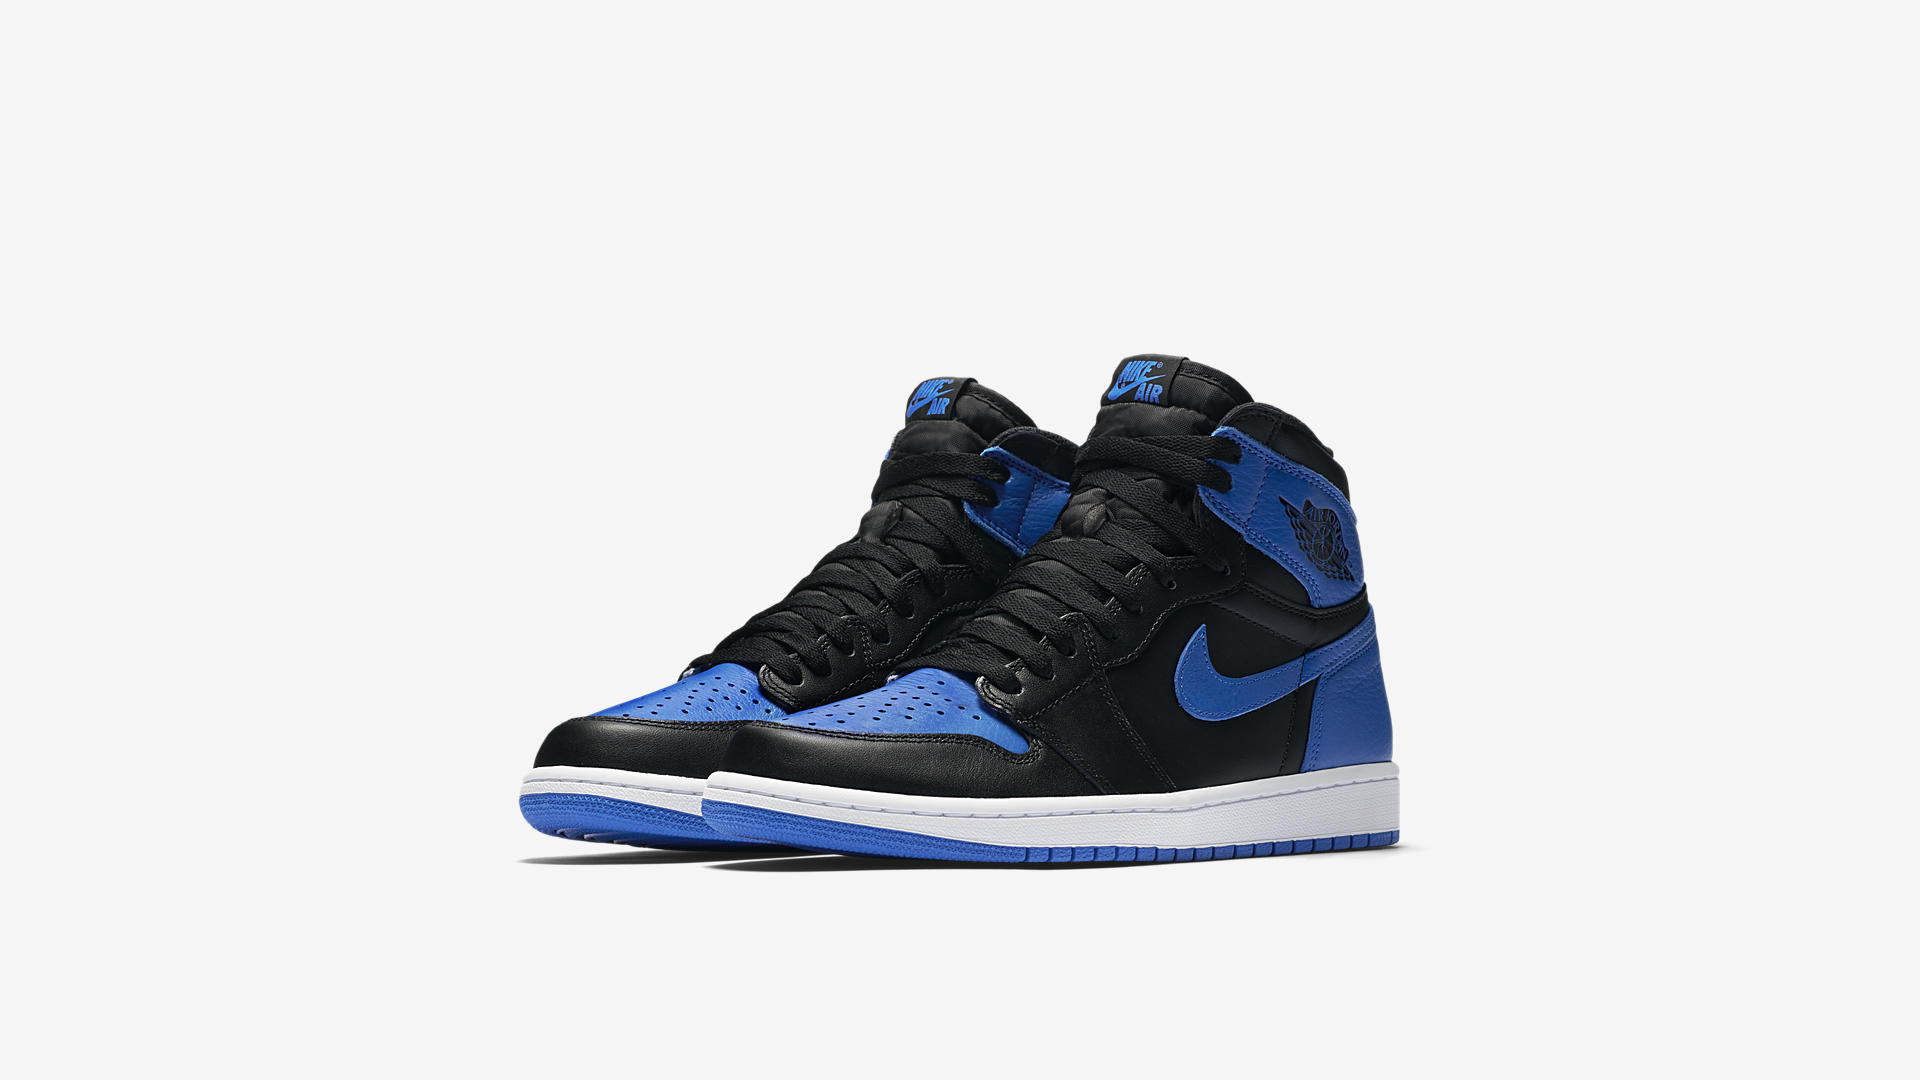 air jordan 1 royal 2017 - 555088-007